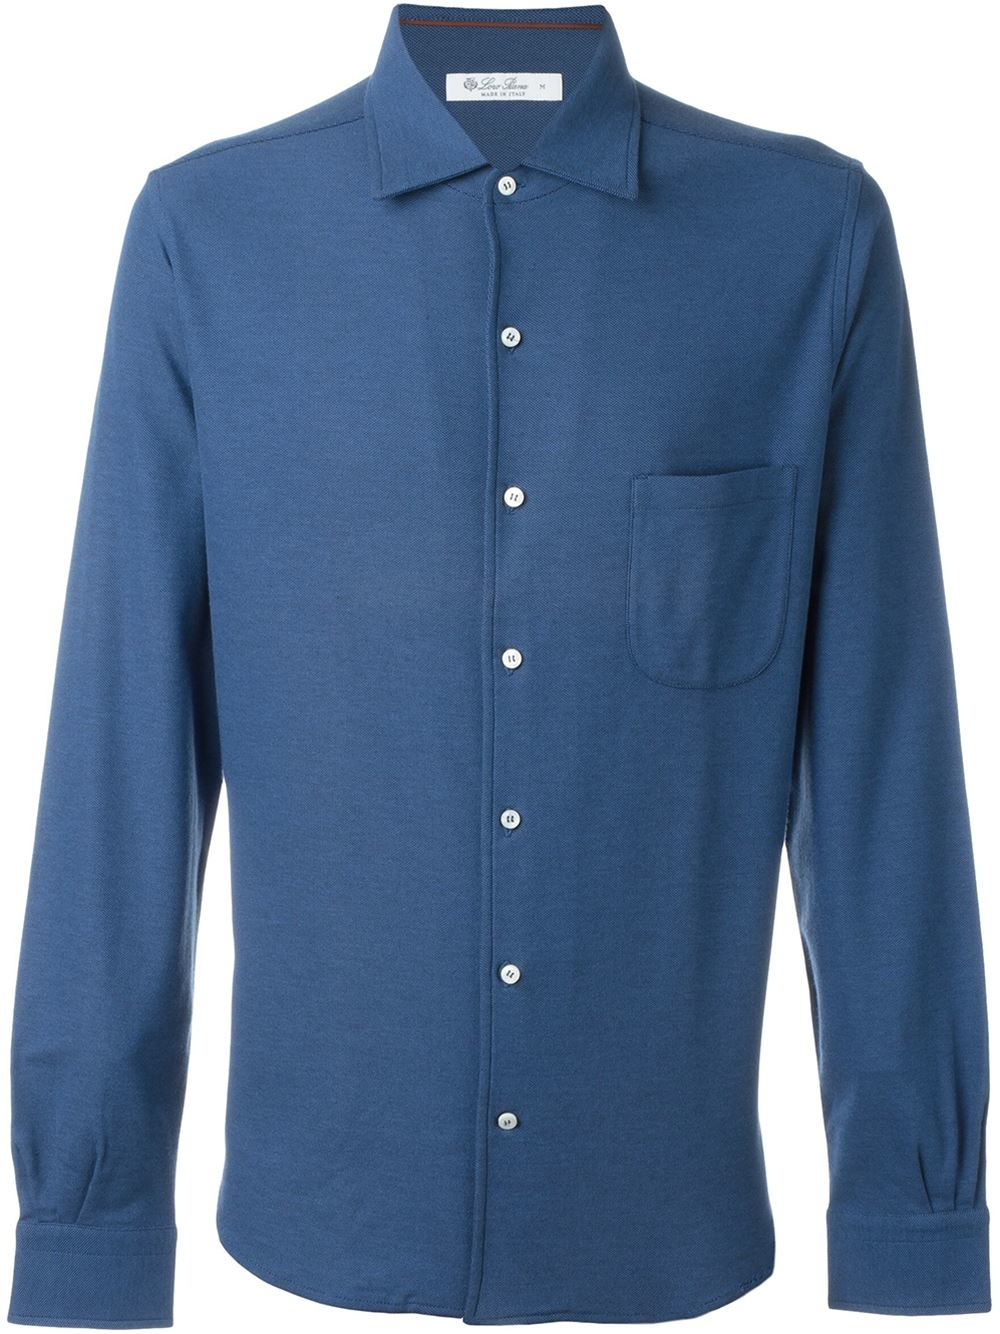 Loro piana classic button down shirt in blue for men lyst for Preppy button down shirts